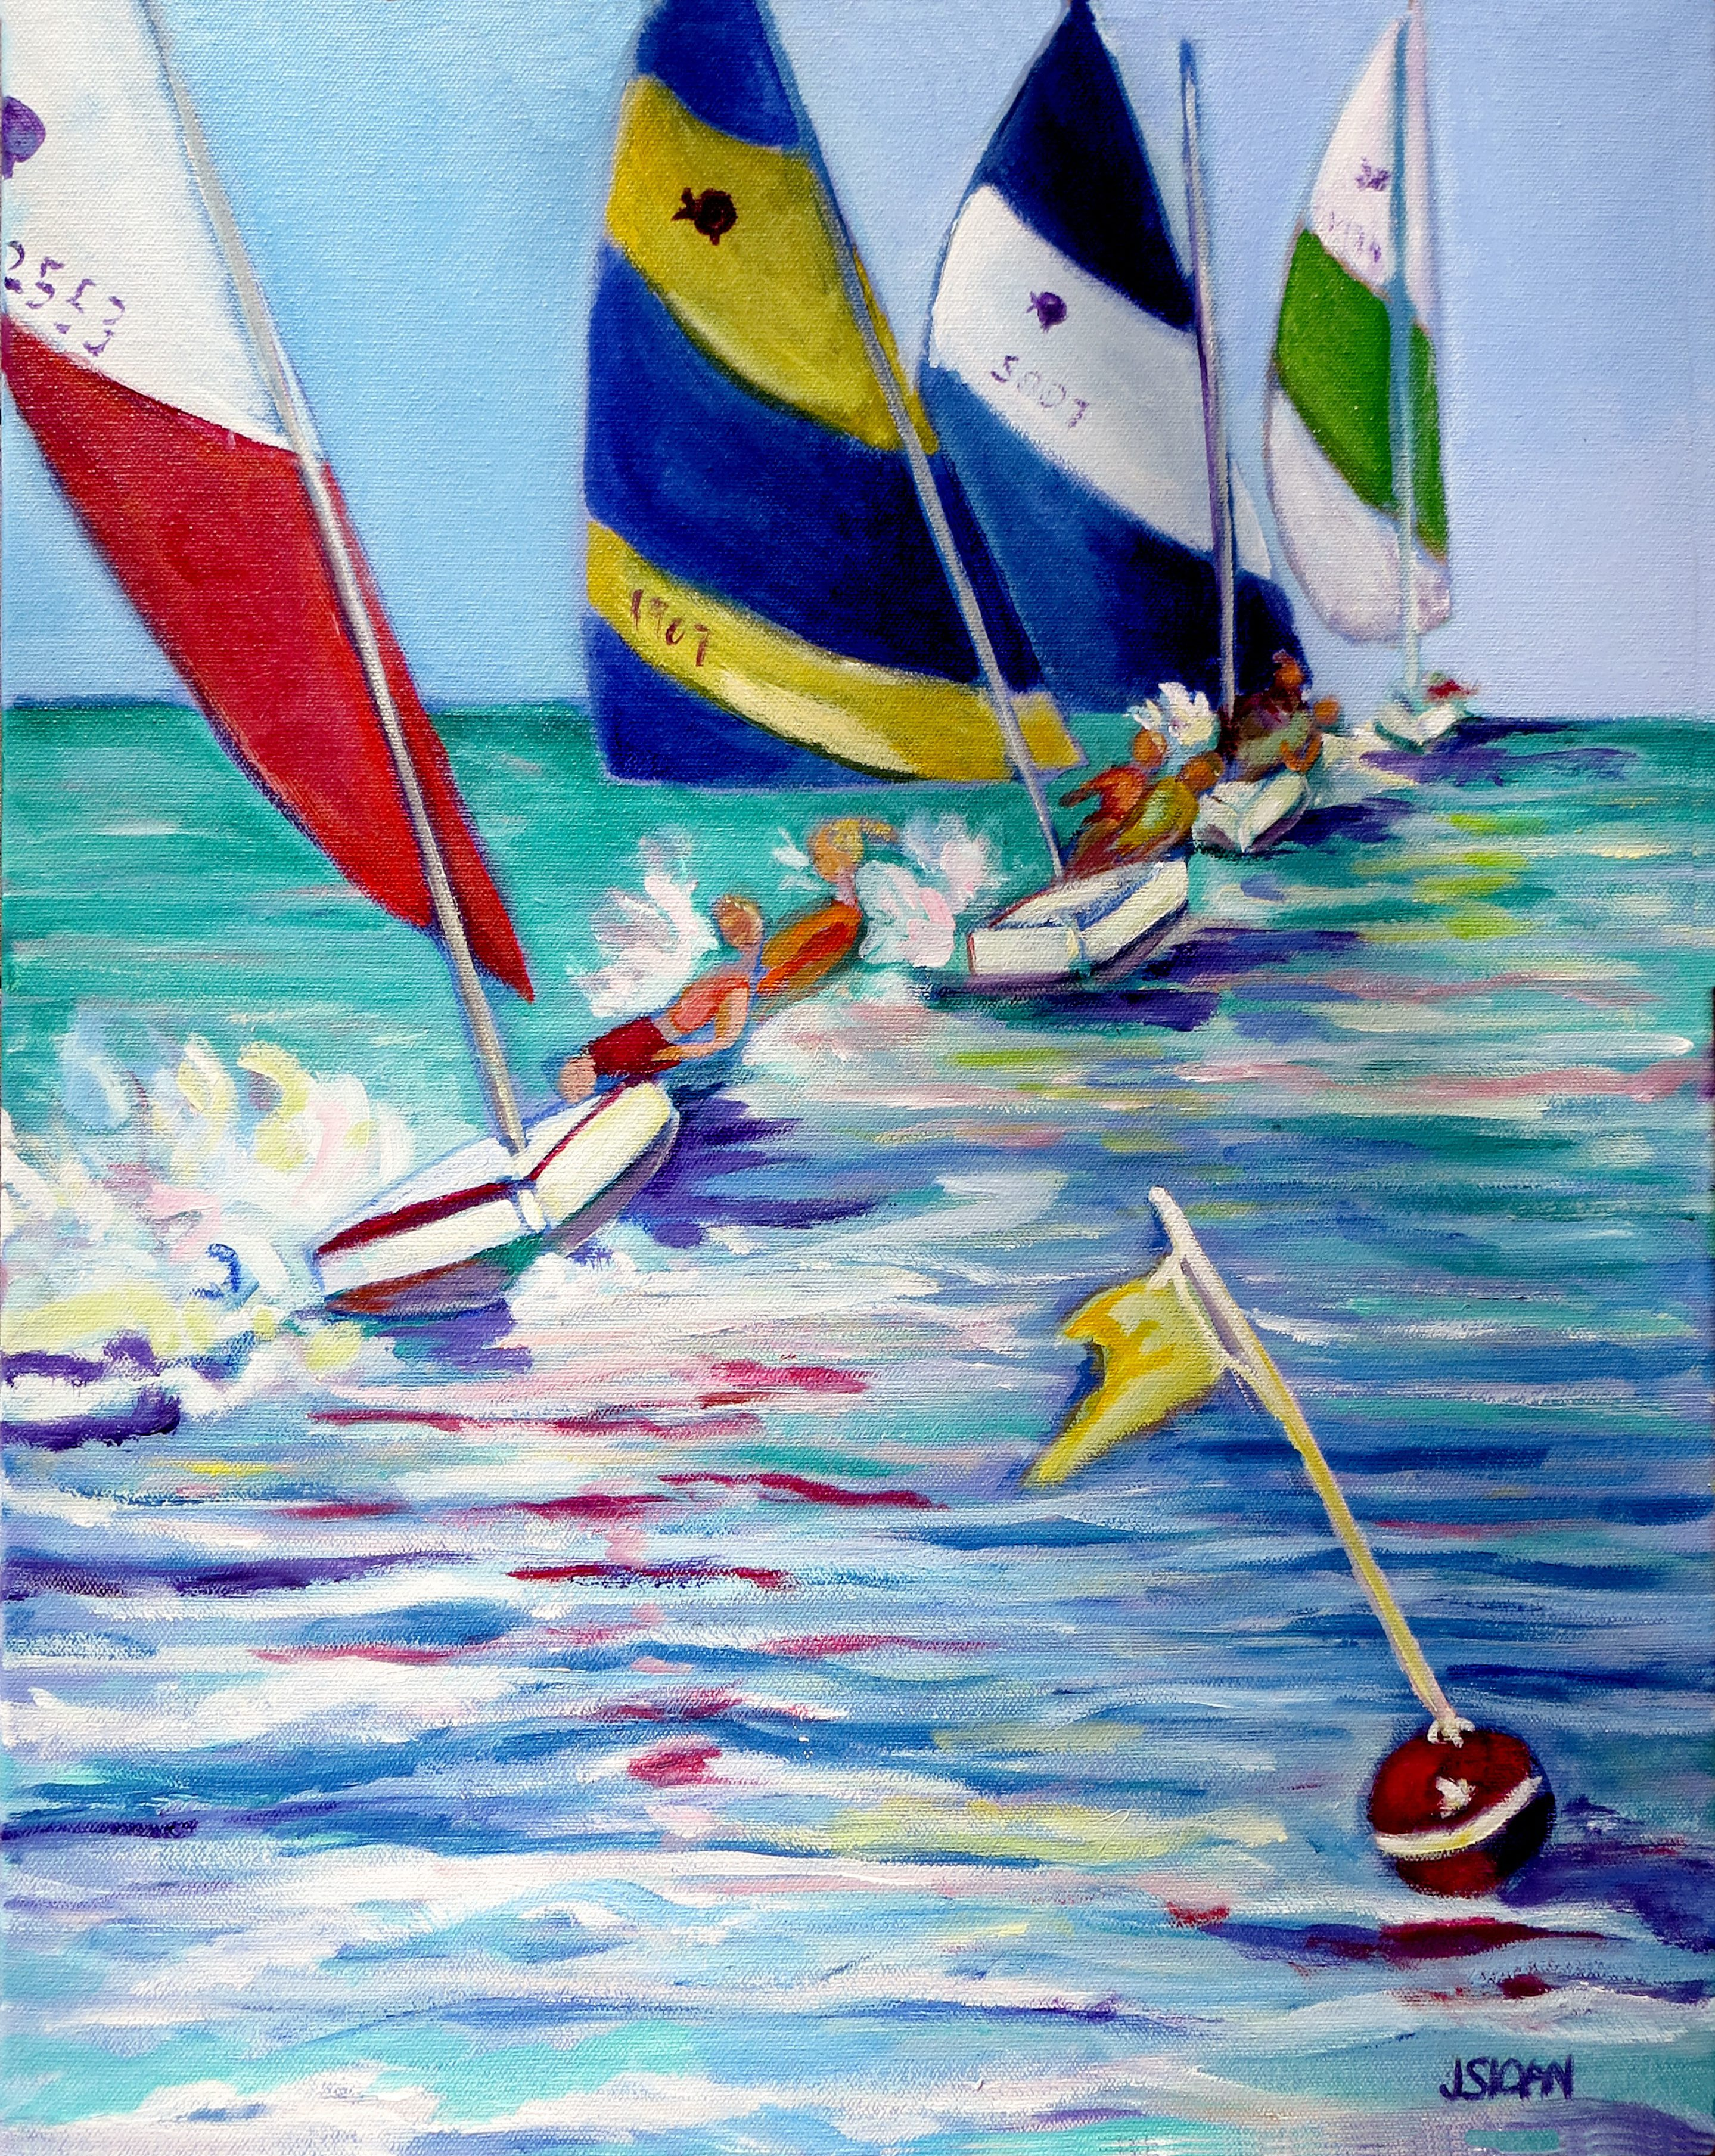 """""""First at the Mark,"""" a painting by Joanne Sloan, is on view in the Jewish Community Center on Delaware Avenue through Aug. 26."""